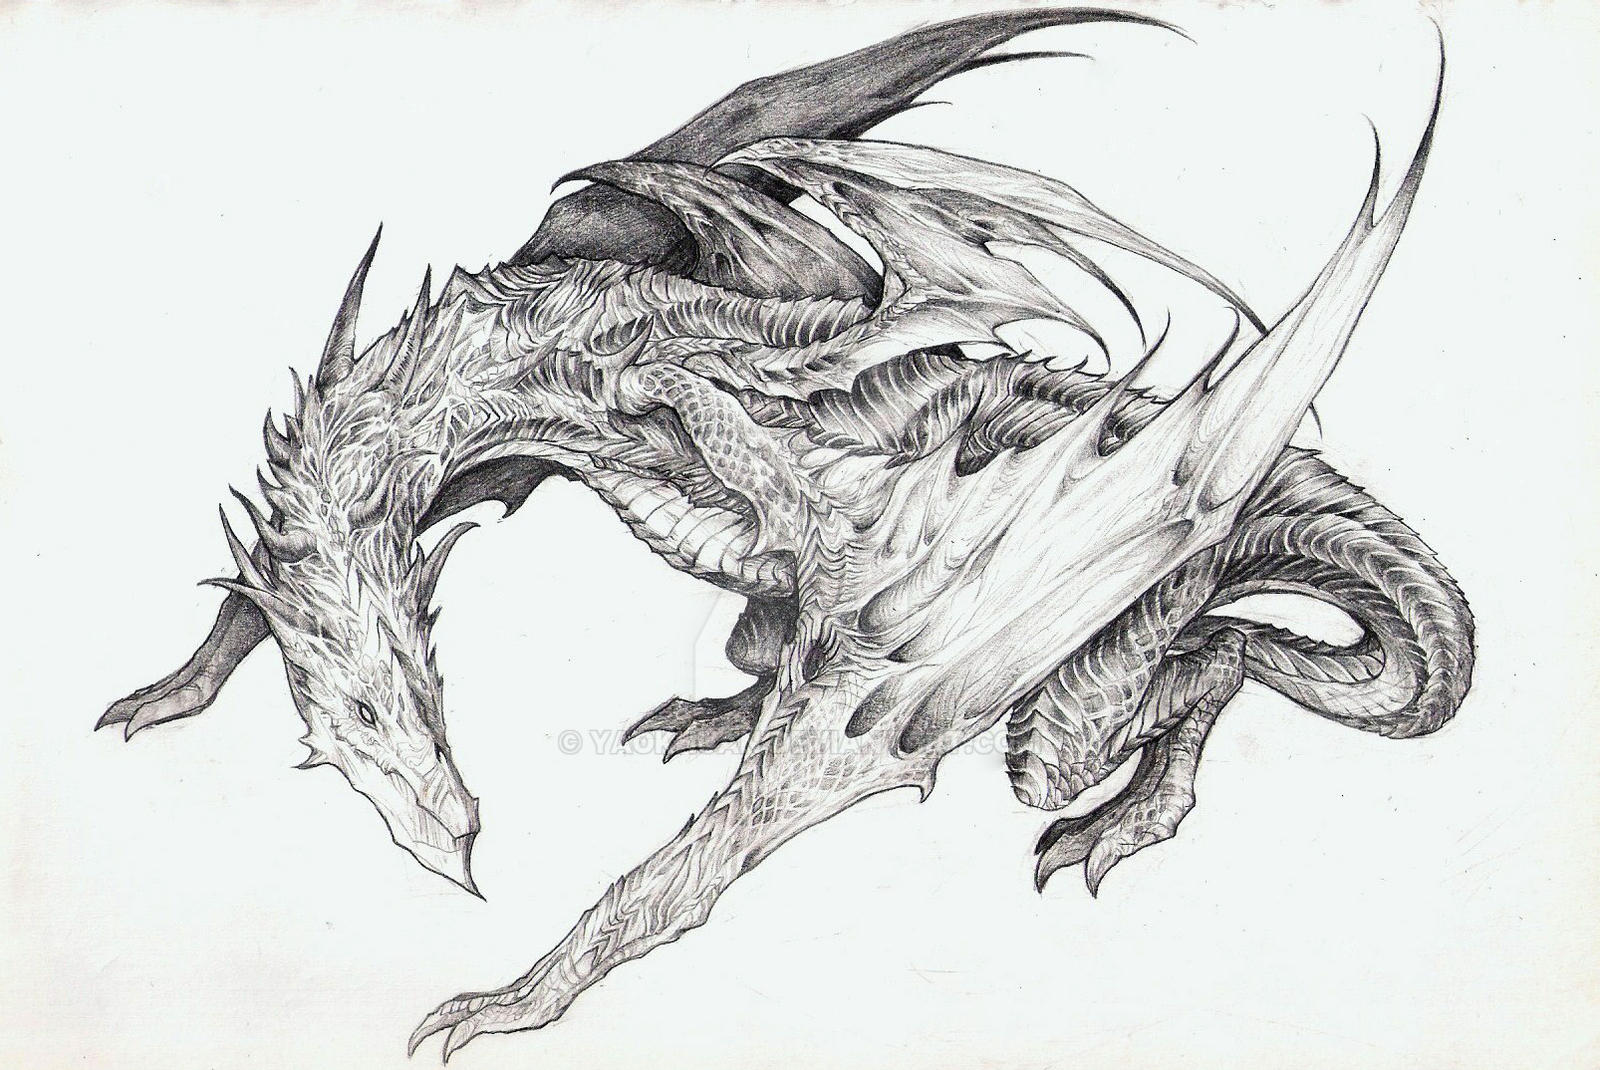 Dragon Concept Art by yaokhuan on DeviantArt